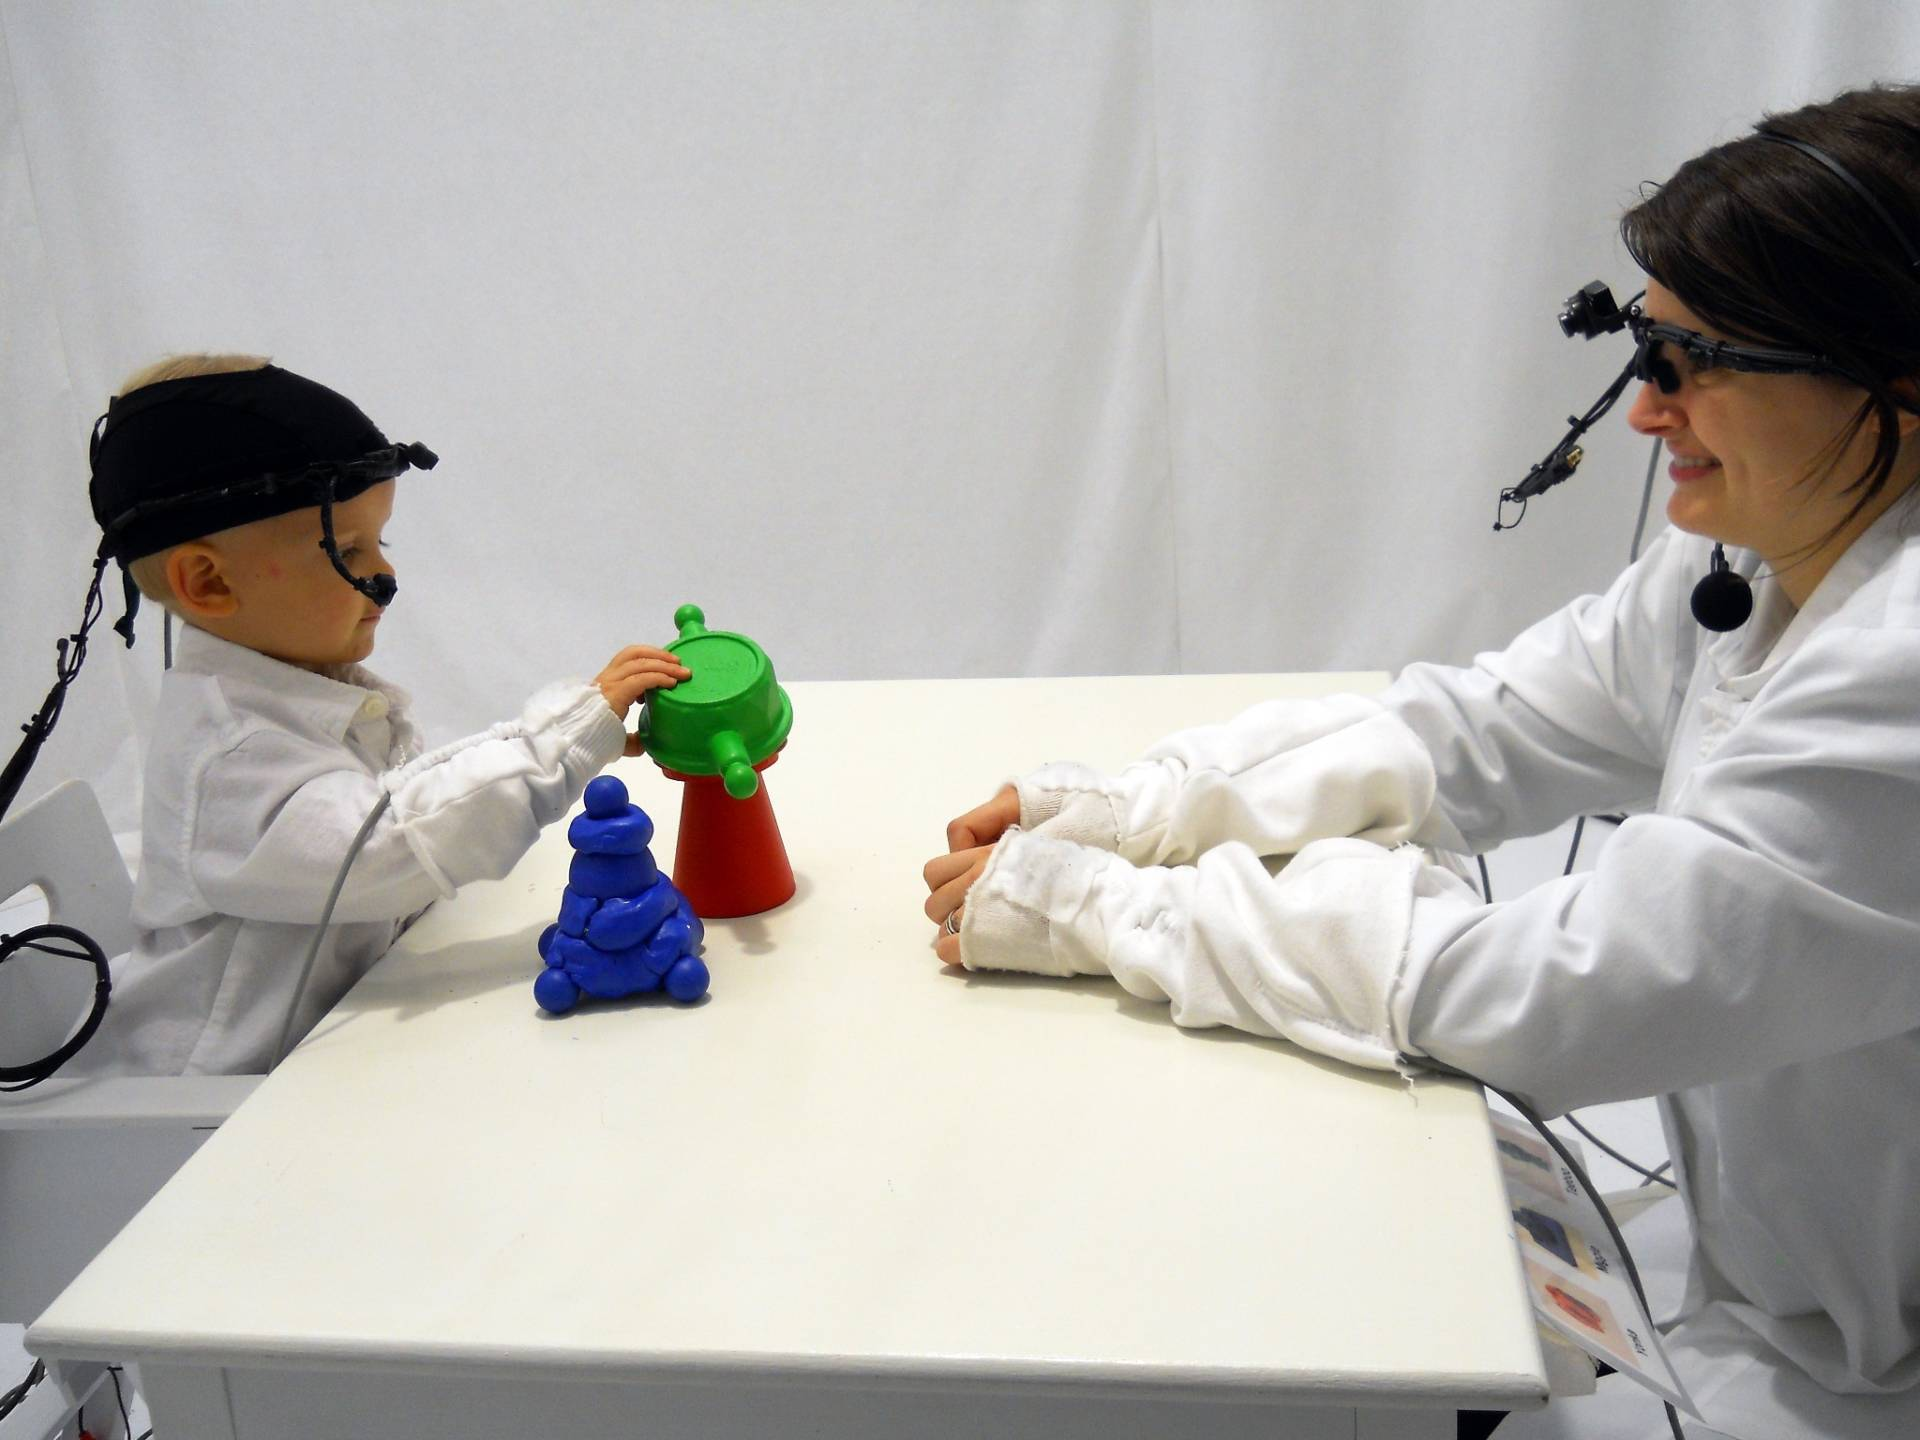 Head-mounted cameras enable psychologists to track how the movement of caregivers' eyes affect infants' attention. (Chen Yu)